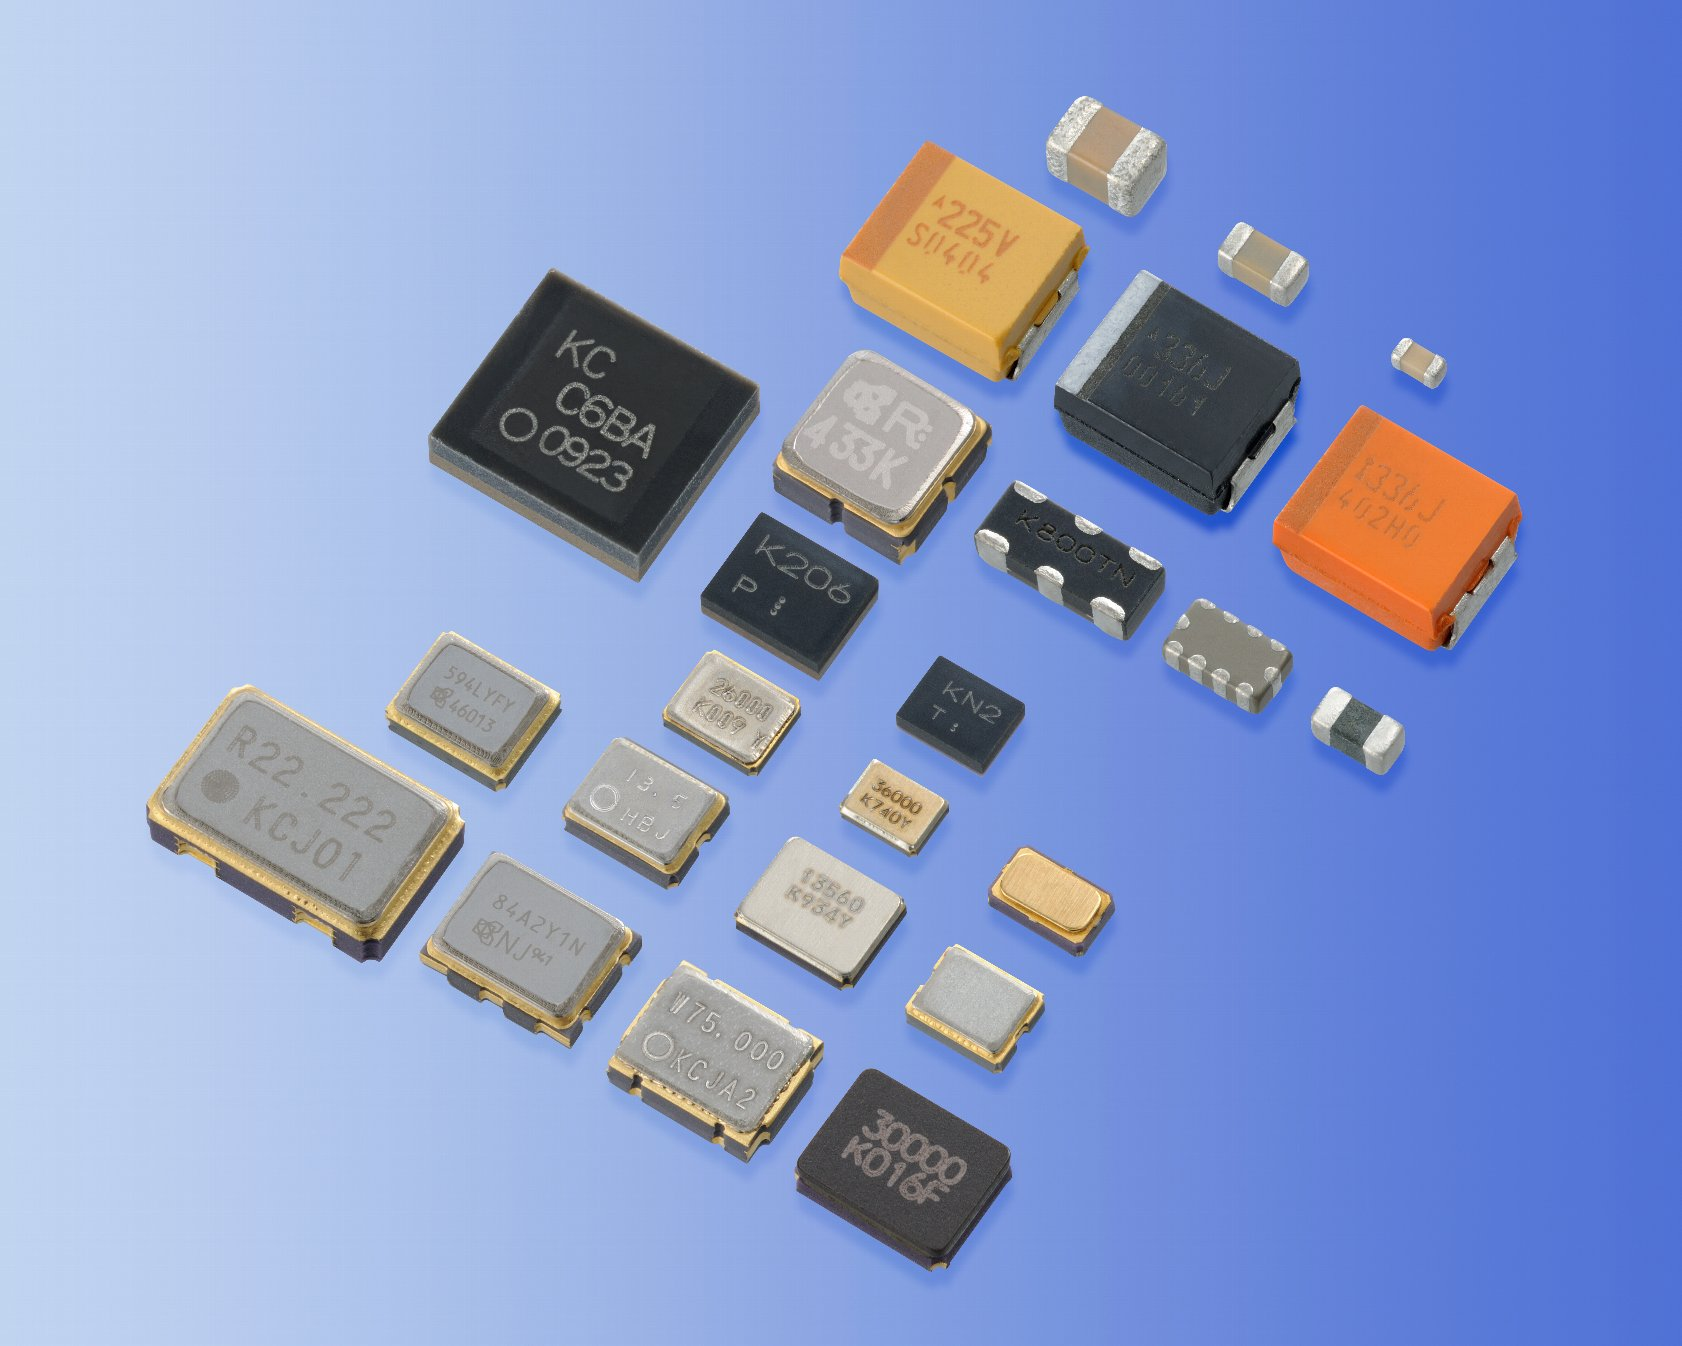 Electronic components' photo